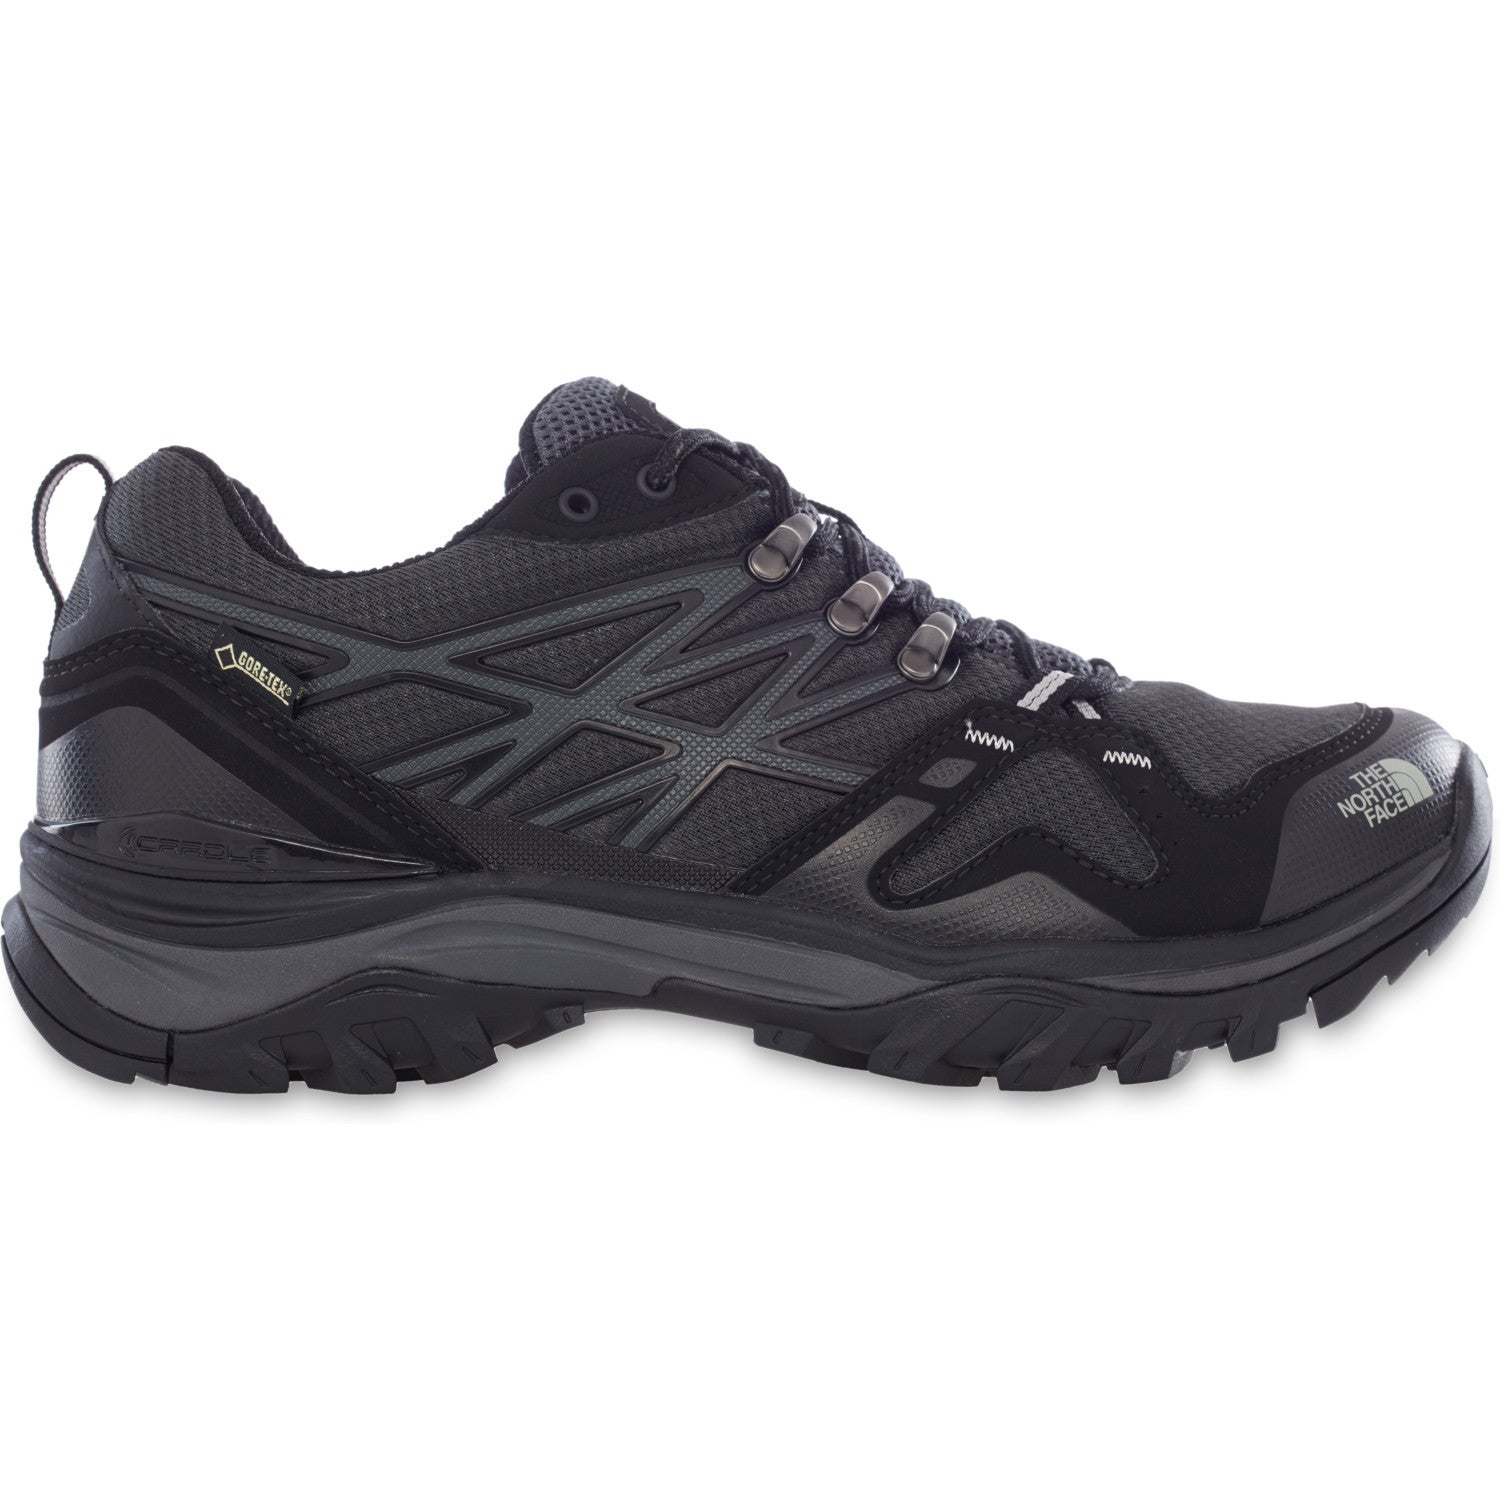 7bfd34ff9ab North Face Hedgehog Fastpack GTX Mens Walking Shoes available at Webtogs